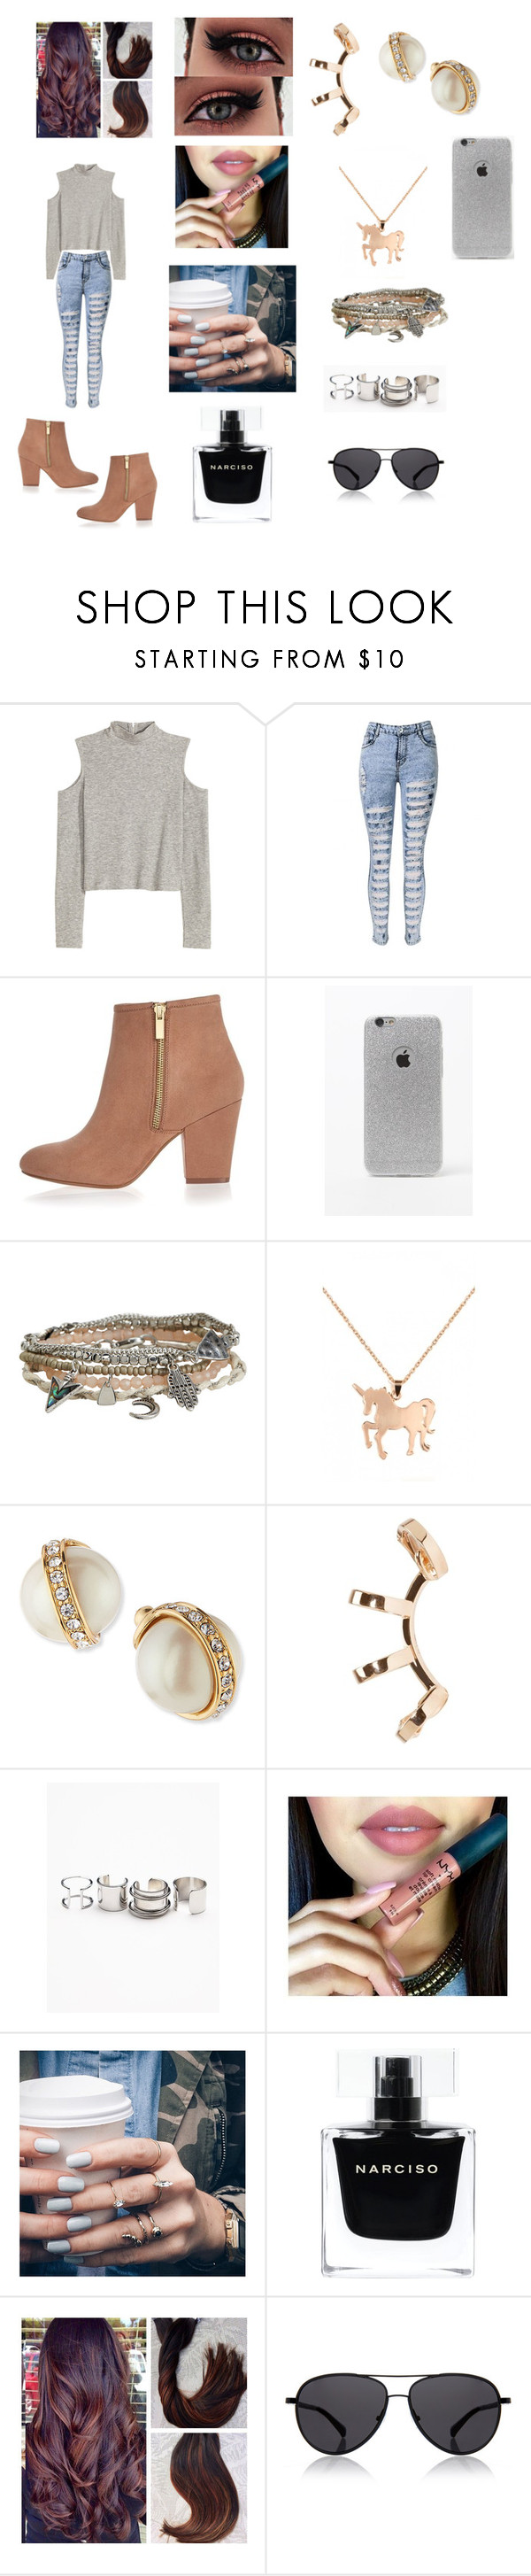 """Finding A New Look"" by roxy-crushlings ❤ liked on Polyvore featuring River Island, LA: Hearts, Aéropostale, Louche, Kate Spade, Repossi, Free People, Floss Gloss, Narciso Rodriguez and The Row"